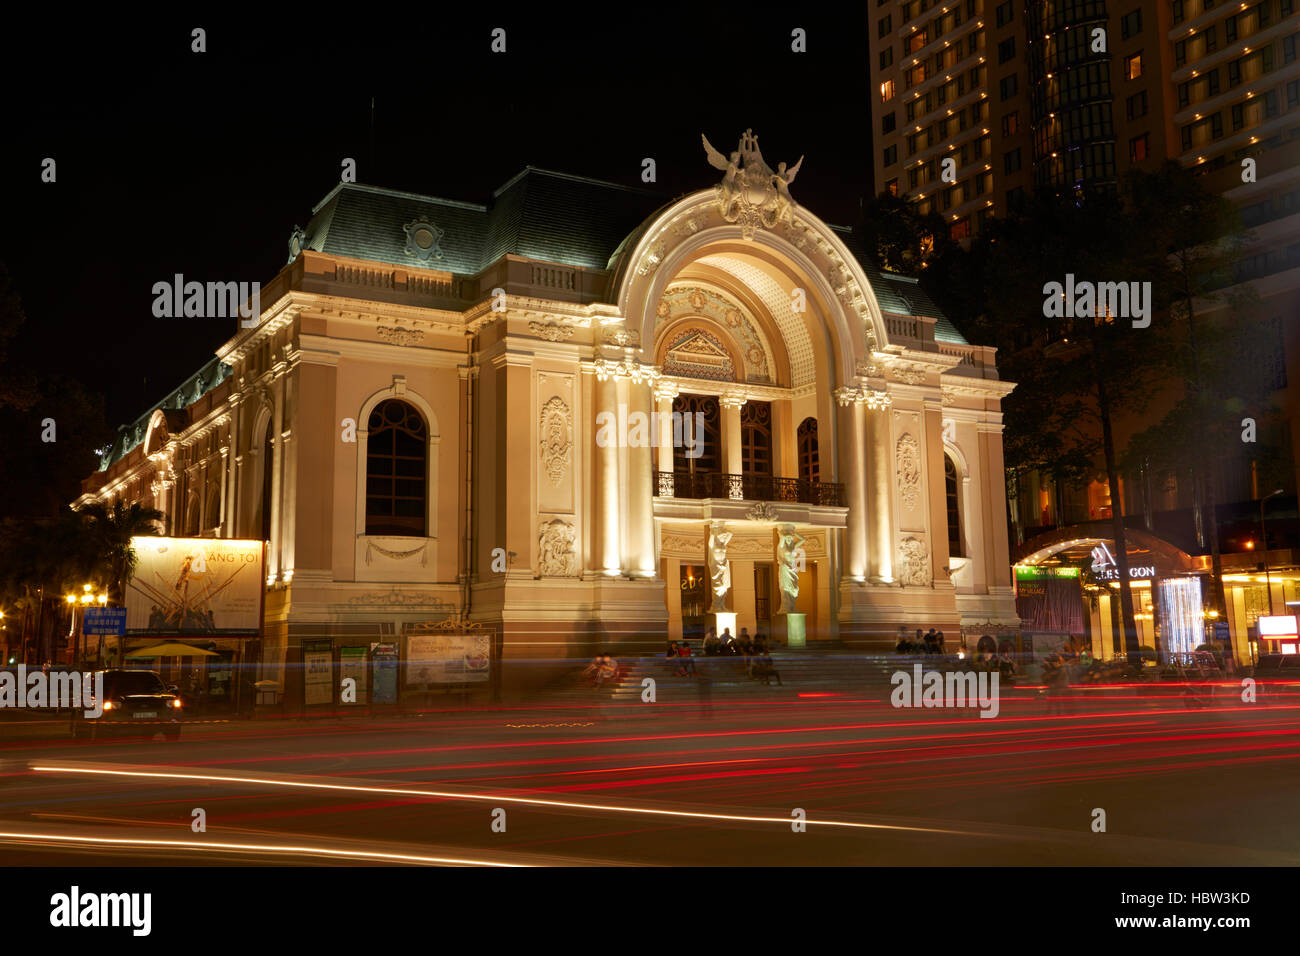 Historic Municipal Theatre of Ho Chi Minh (aka Saigon Opera House), Ho Chi Minh City (Saigon), Vietnam Stock Photo